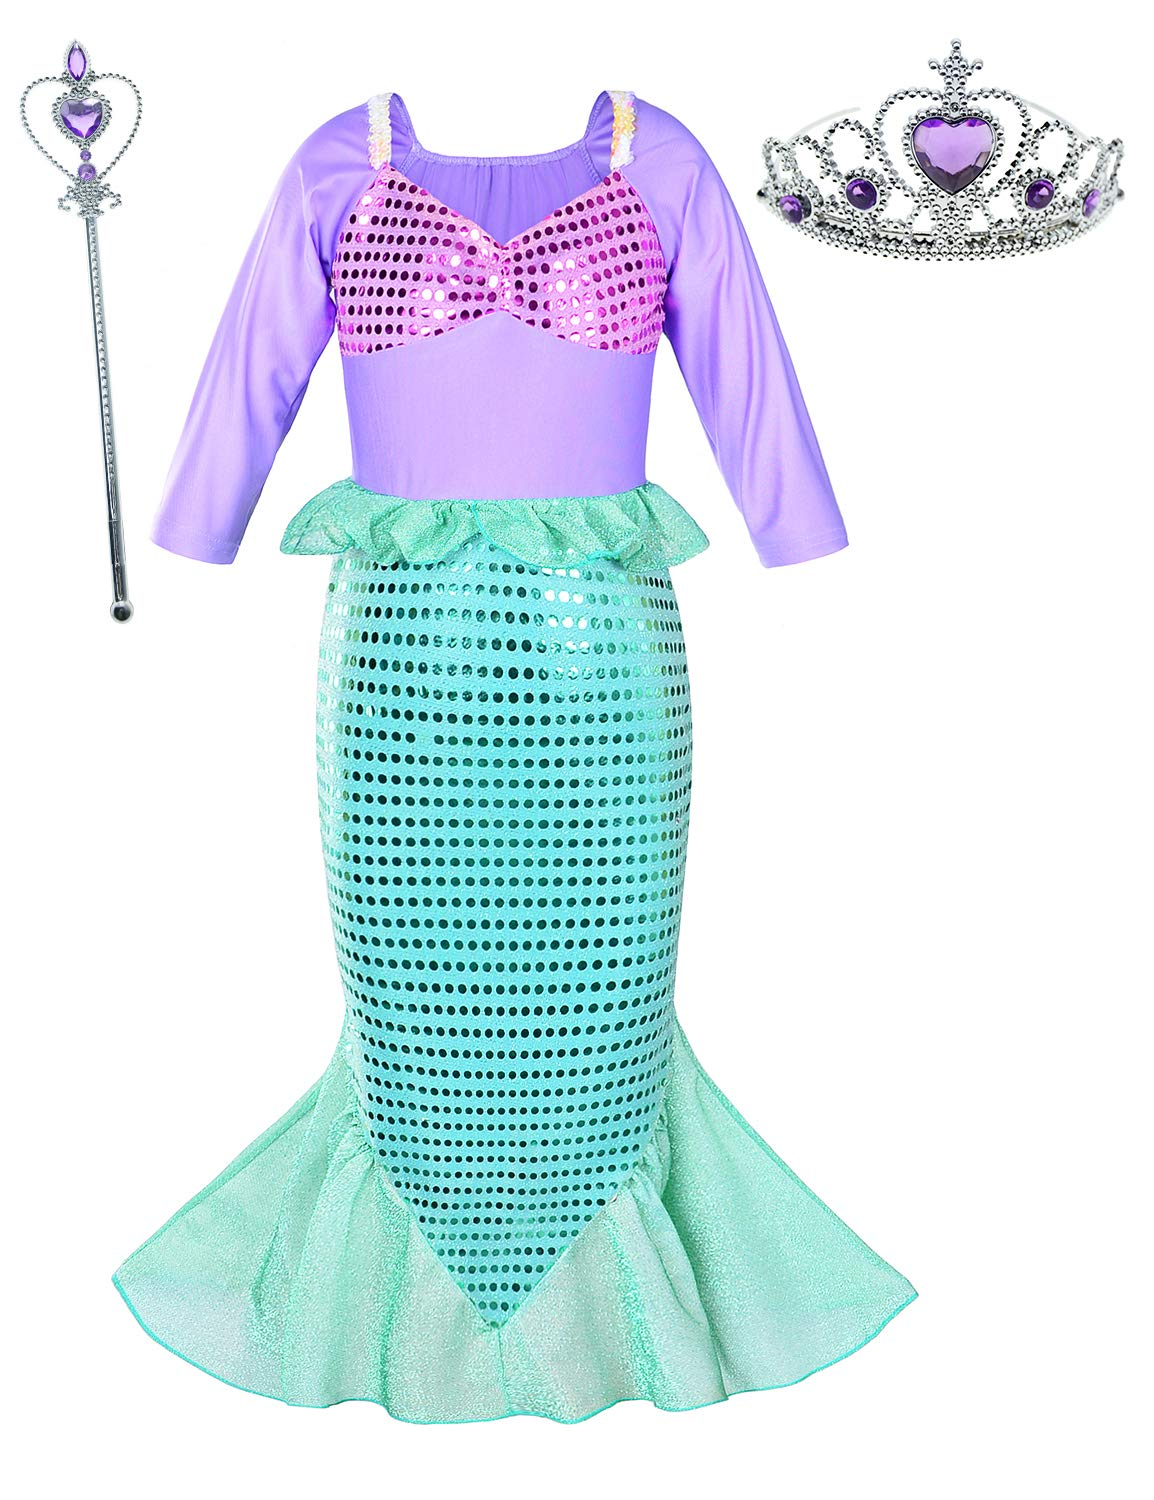 Girls Little Mermaid Costume Princess Dress Up For Birthday with Accessories(Crown+Wand) 4T 5T(110cm)